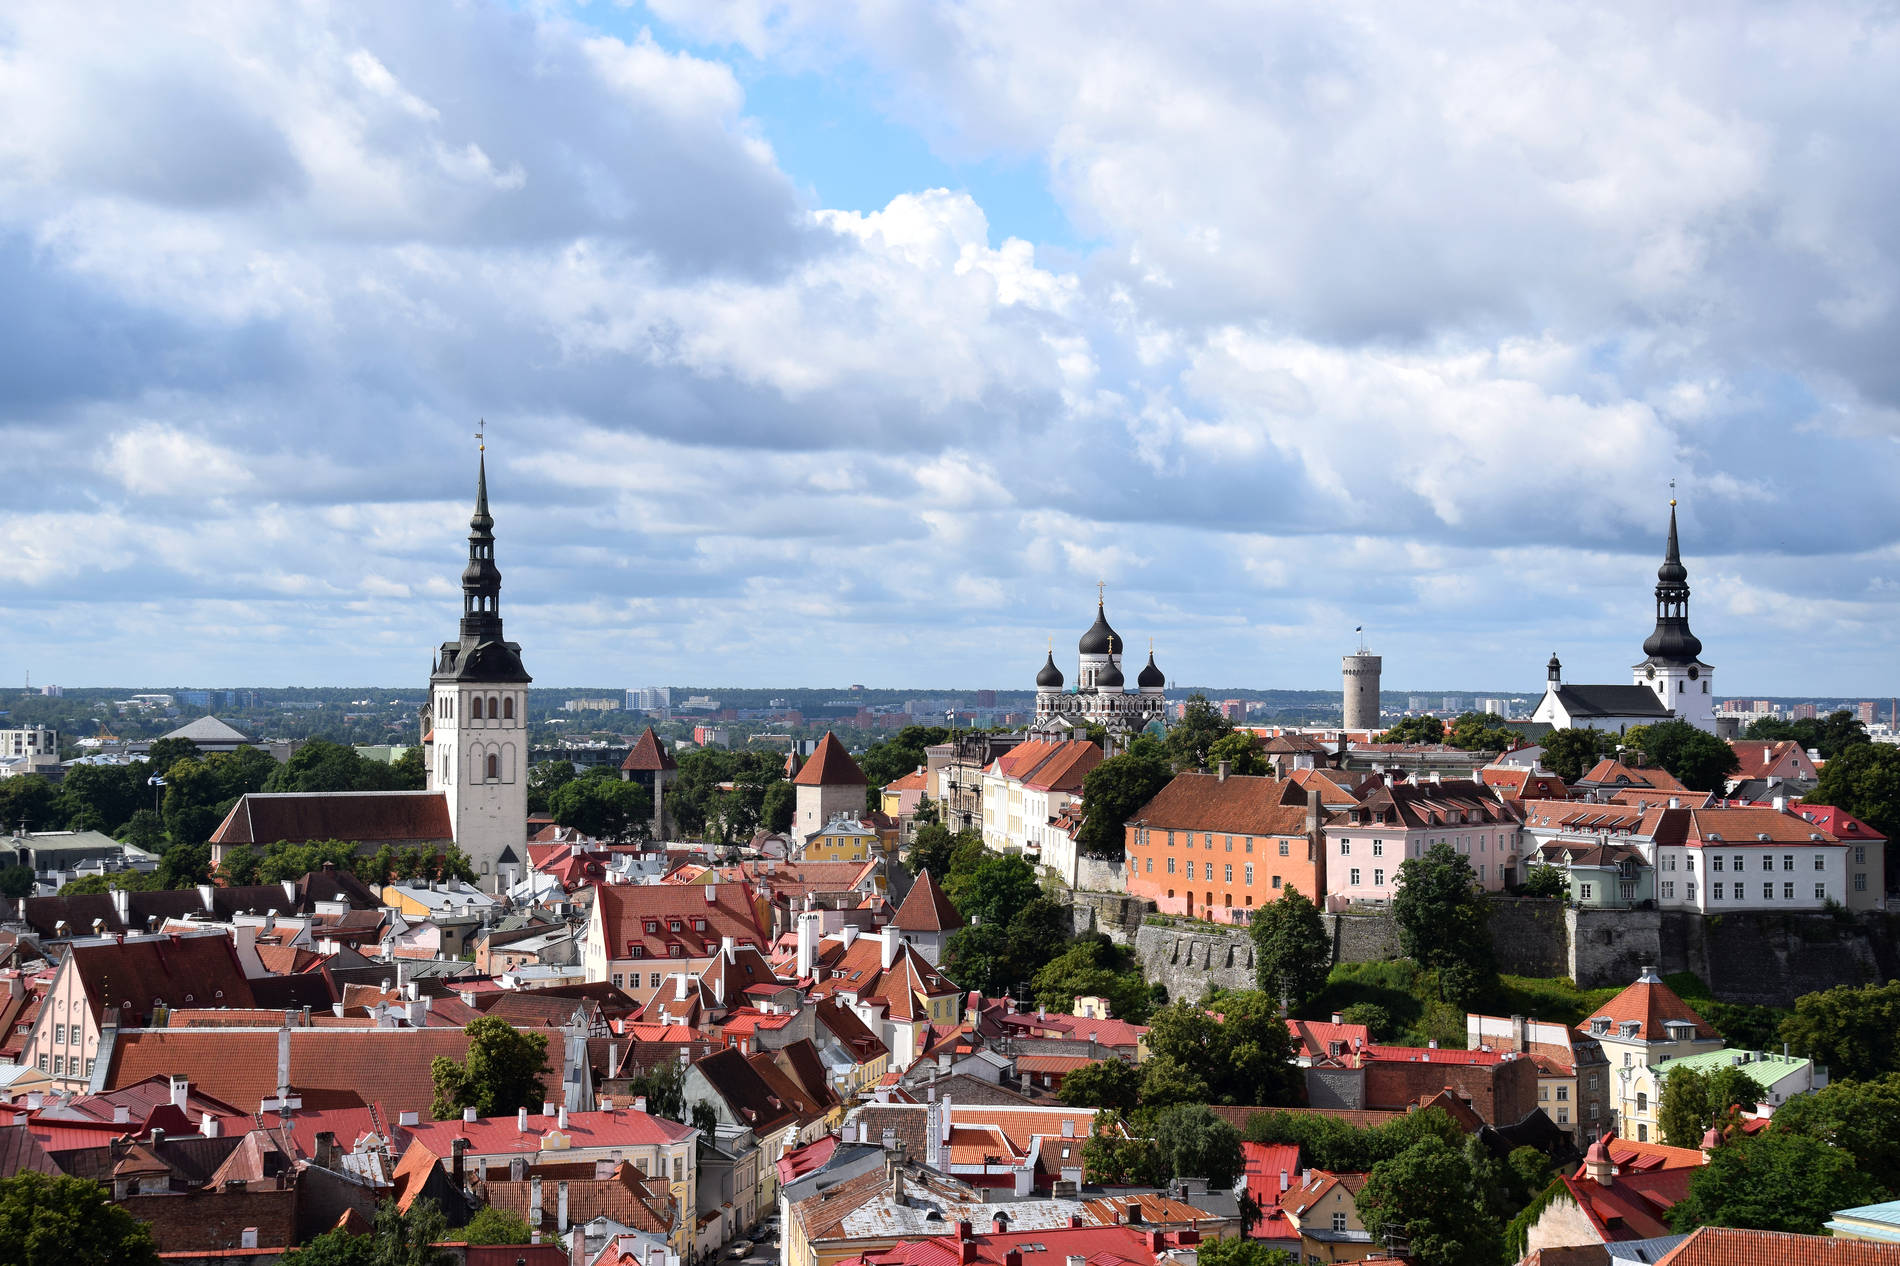 View of the Old Town from St Olaf's Church Photo by: Kadi-Liis Koppel